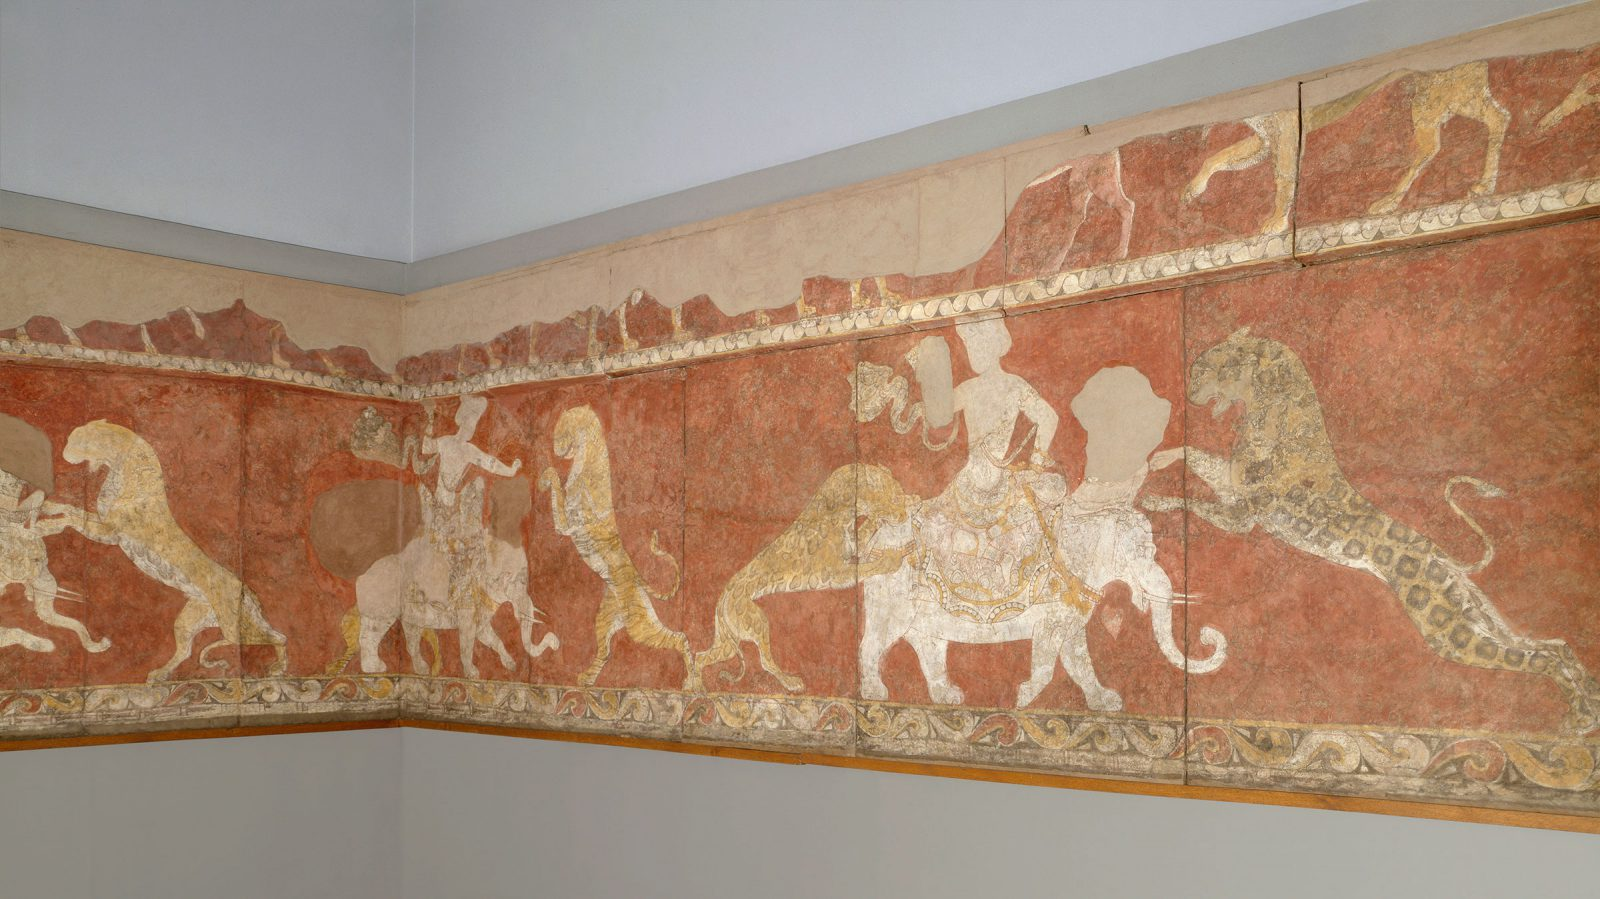 This painting shows a battle between a deity and a beast of prey, possibly leopards. The deity is in the middle, sitting on an elephant as beasts attach from either side.